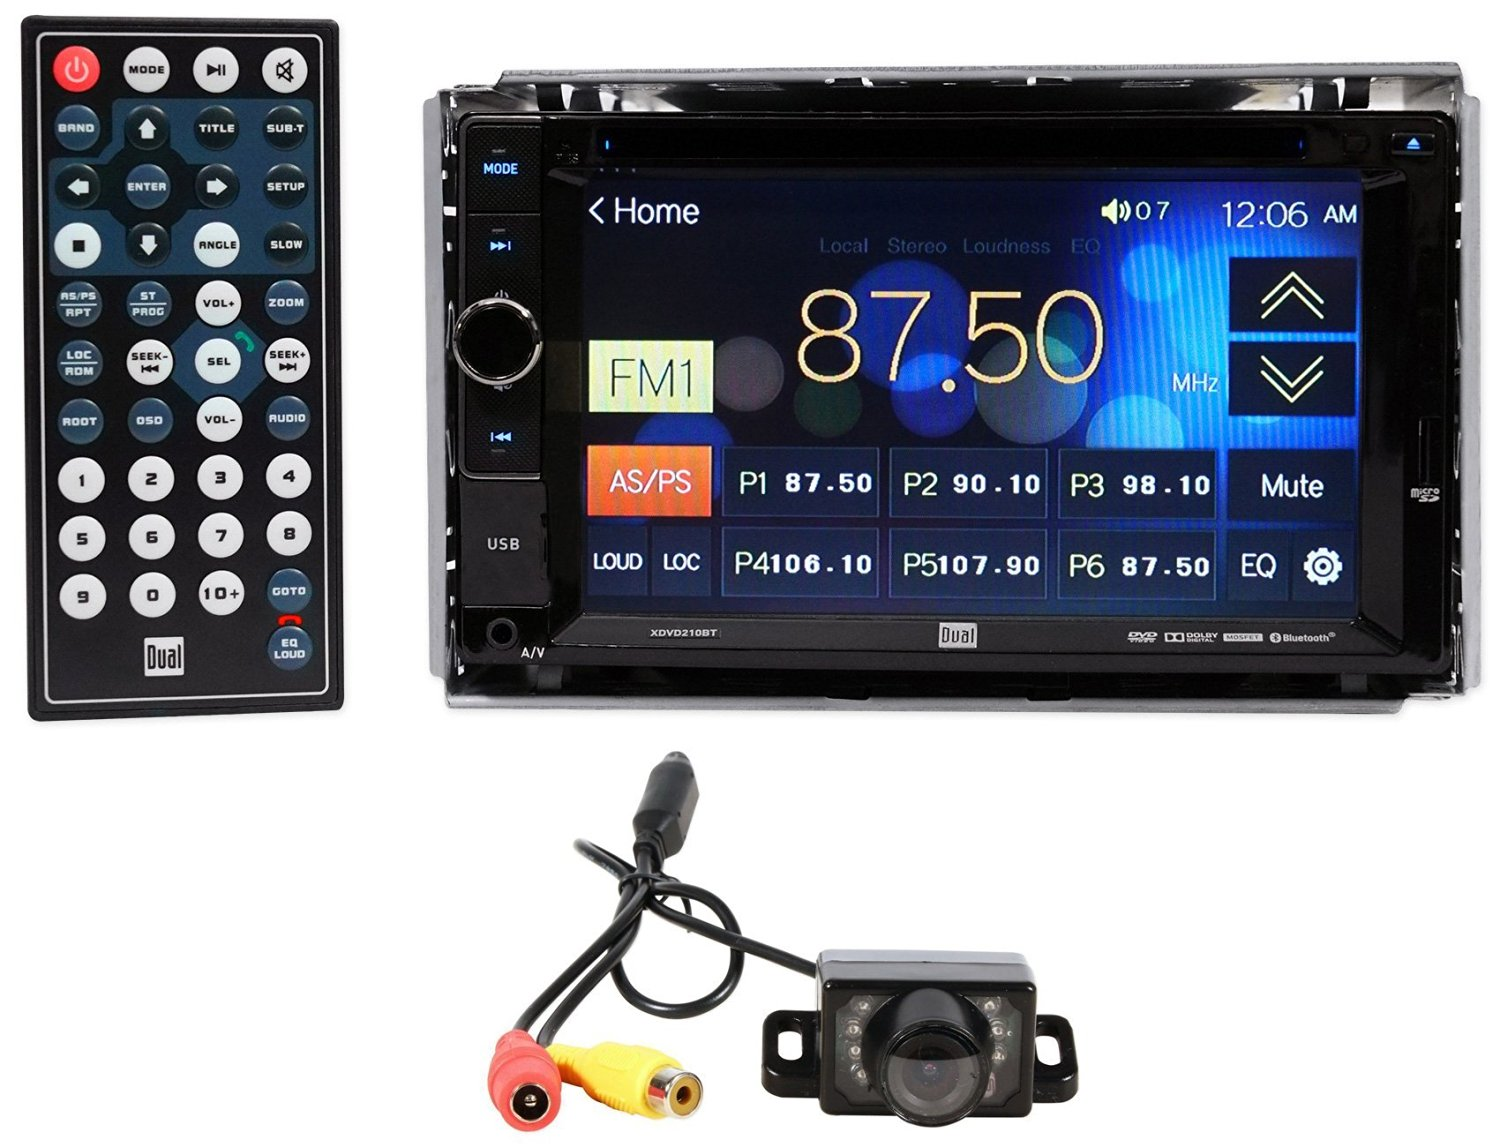 cheap dual xdvd210 manual find dual xdvd210 manual deals on line at rh guide alibaba com Add Bluetooth to Car Radio Car Audio Bluetooth Adapter